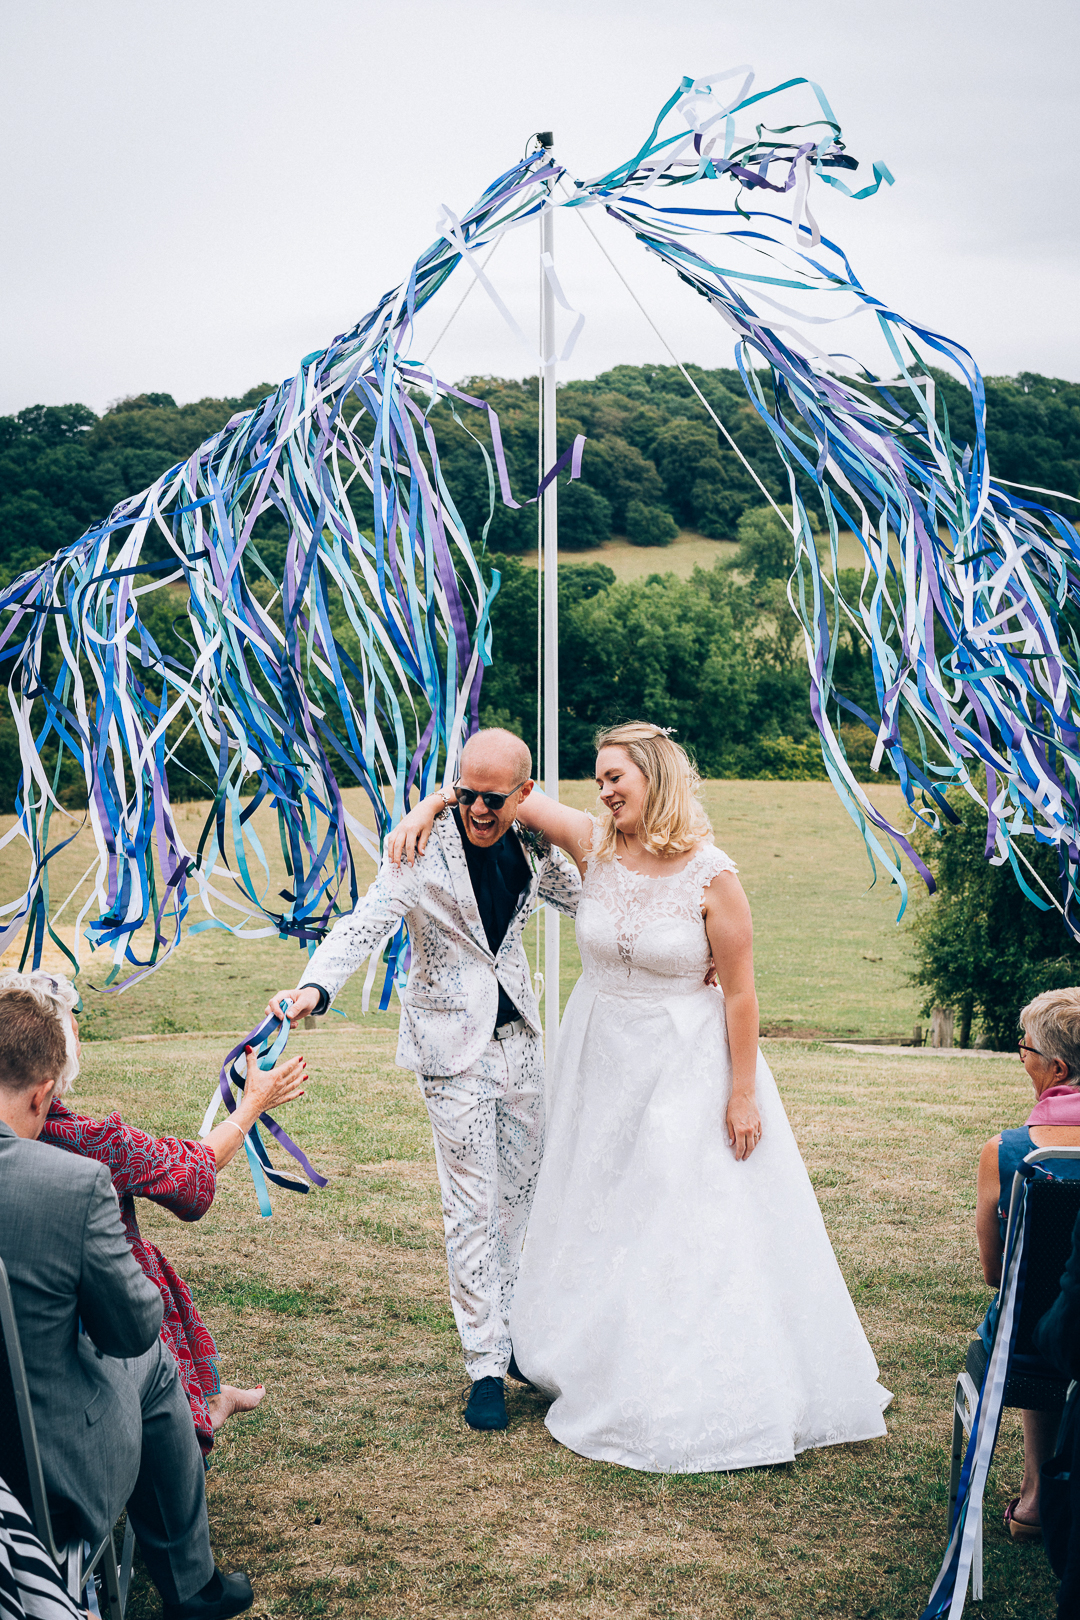 Wilderhope Manor Humanist Wedding outside with ribbons